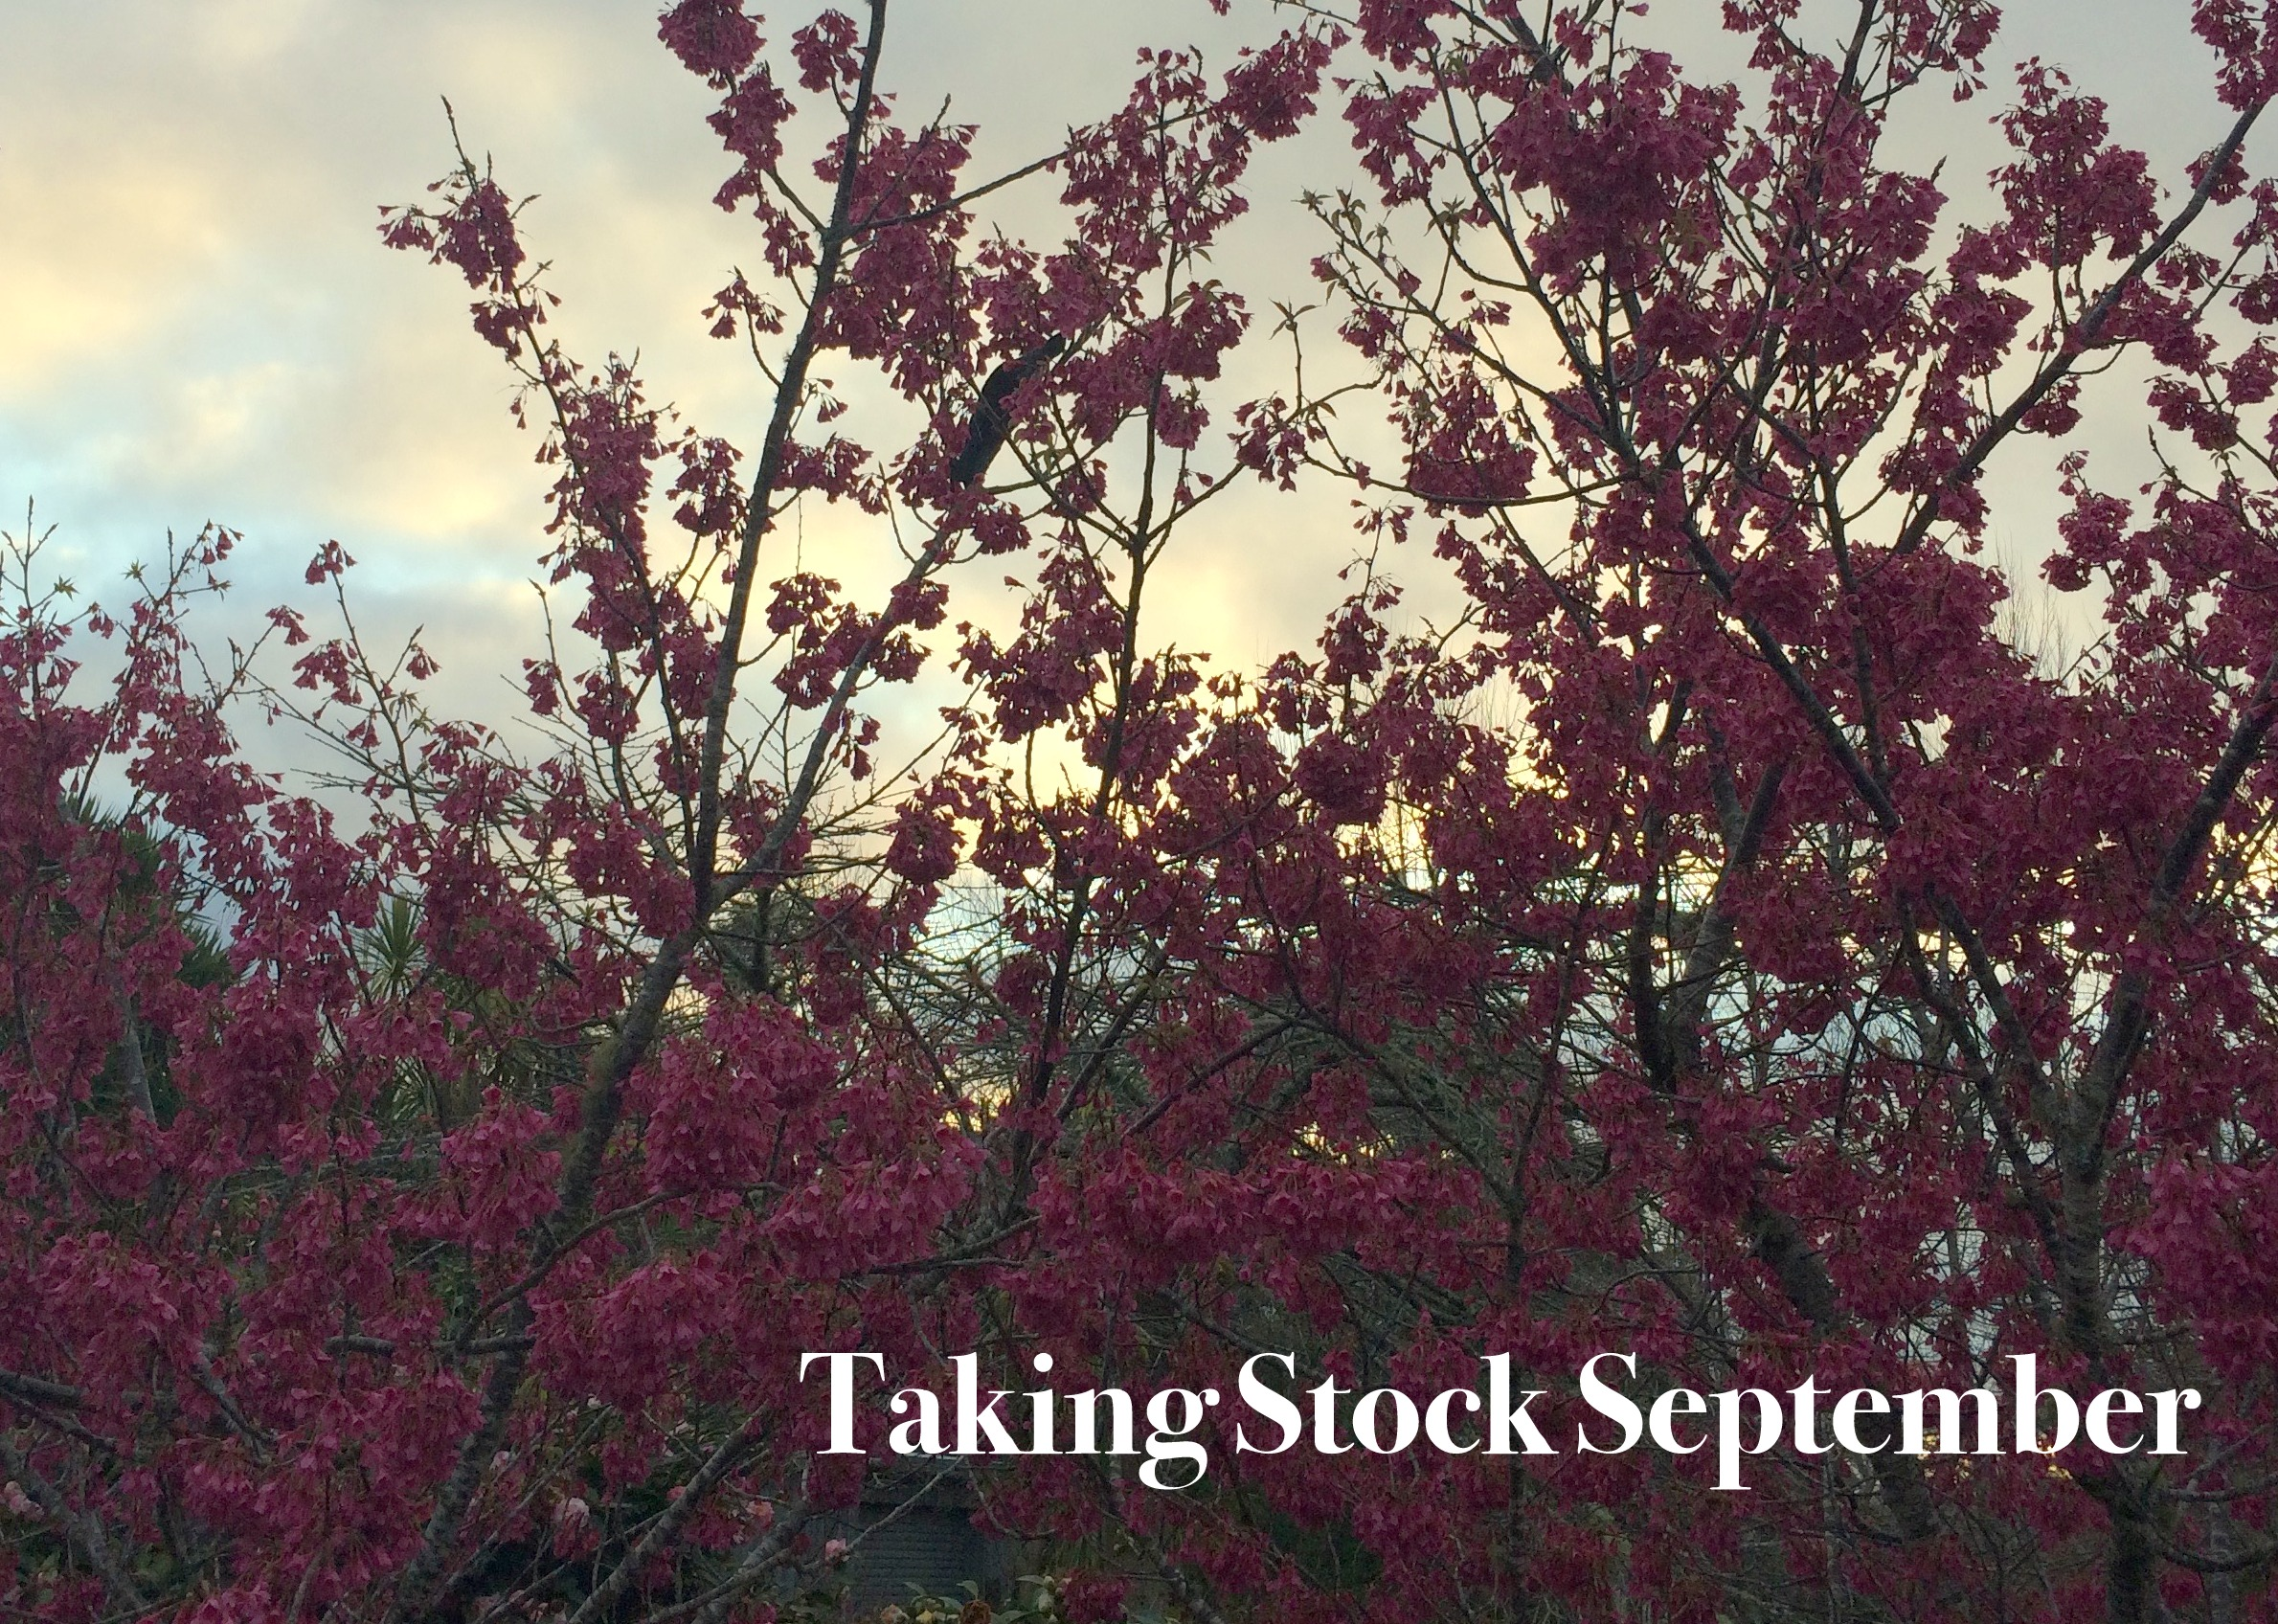 Taking Stock September myfoxycorner